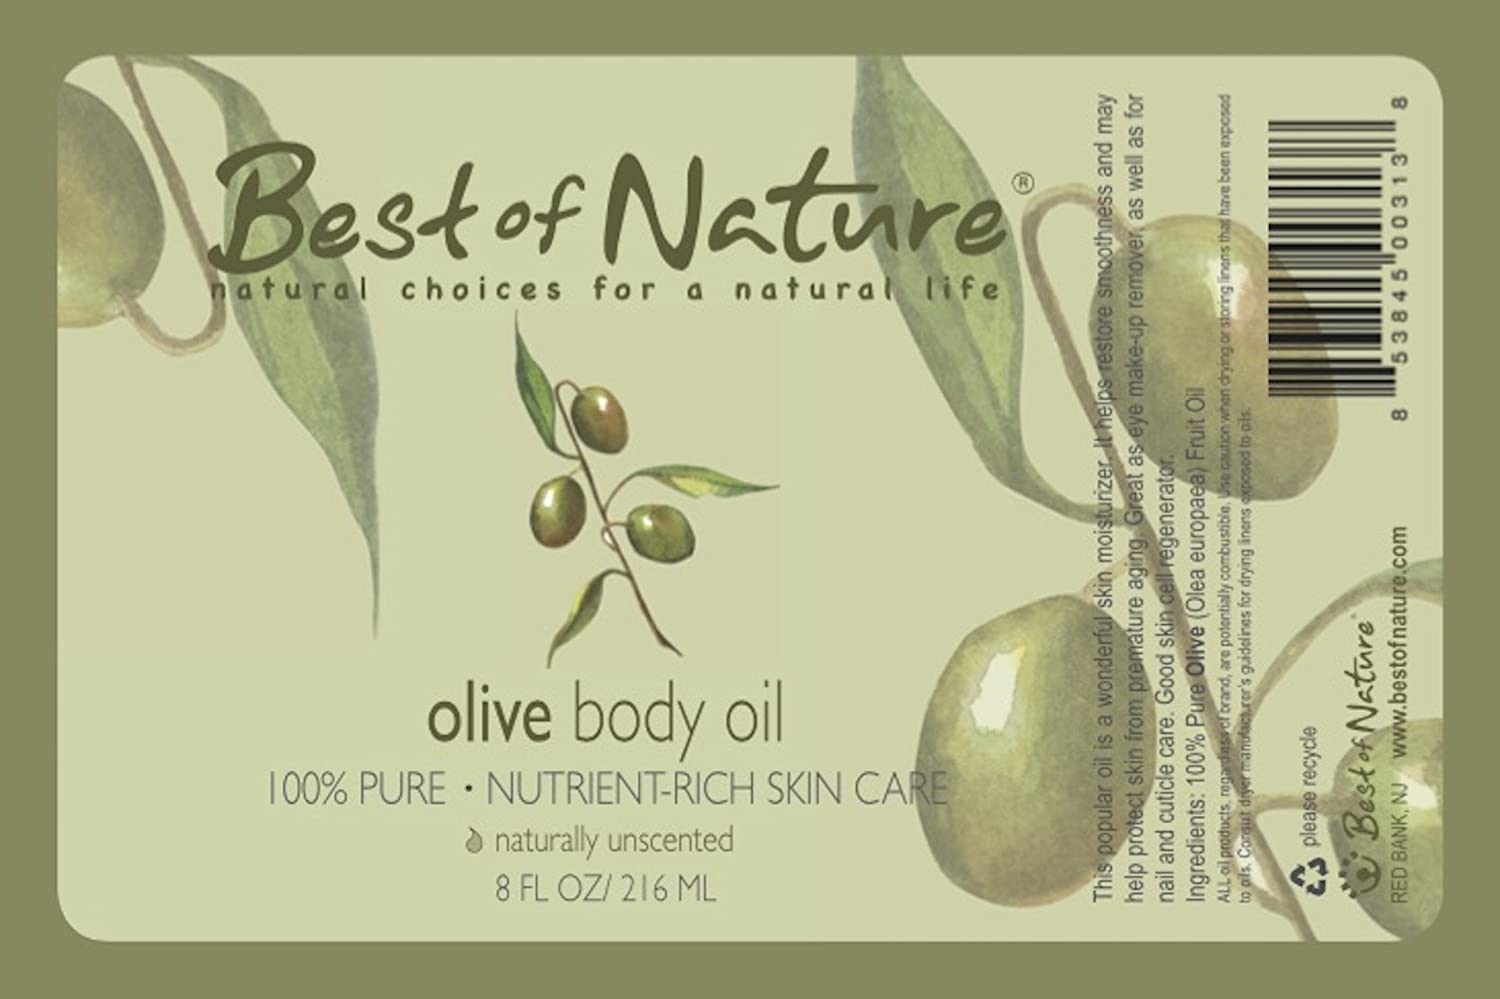 Olive Body Oil - 8oz -100% Pure & Natural - For Body & Hair! : Beauty